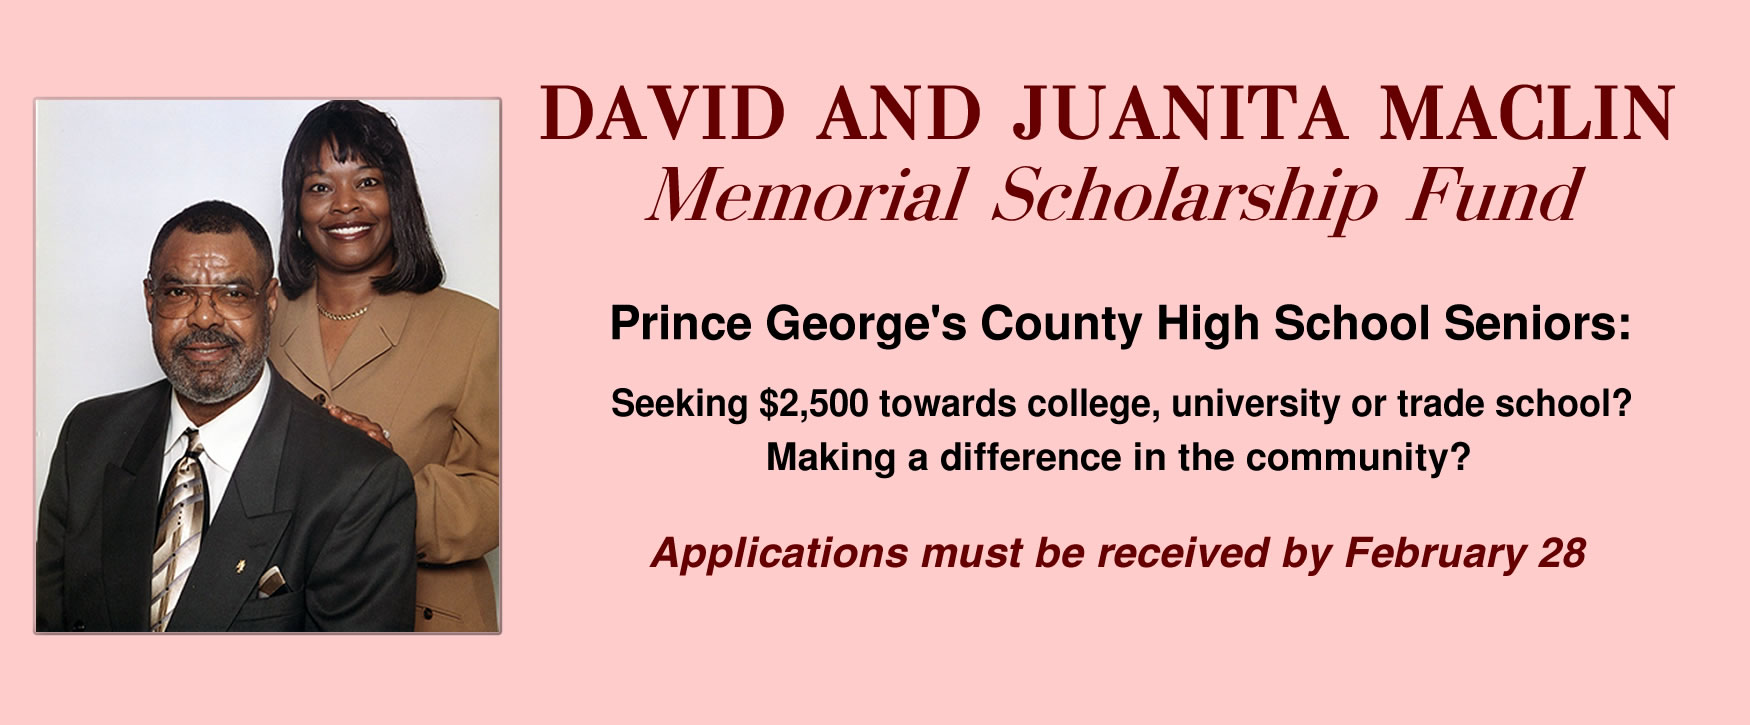 Help high school seniors apply for $2500 scholarship - February 28 deadline